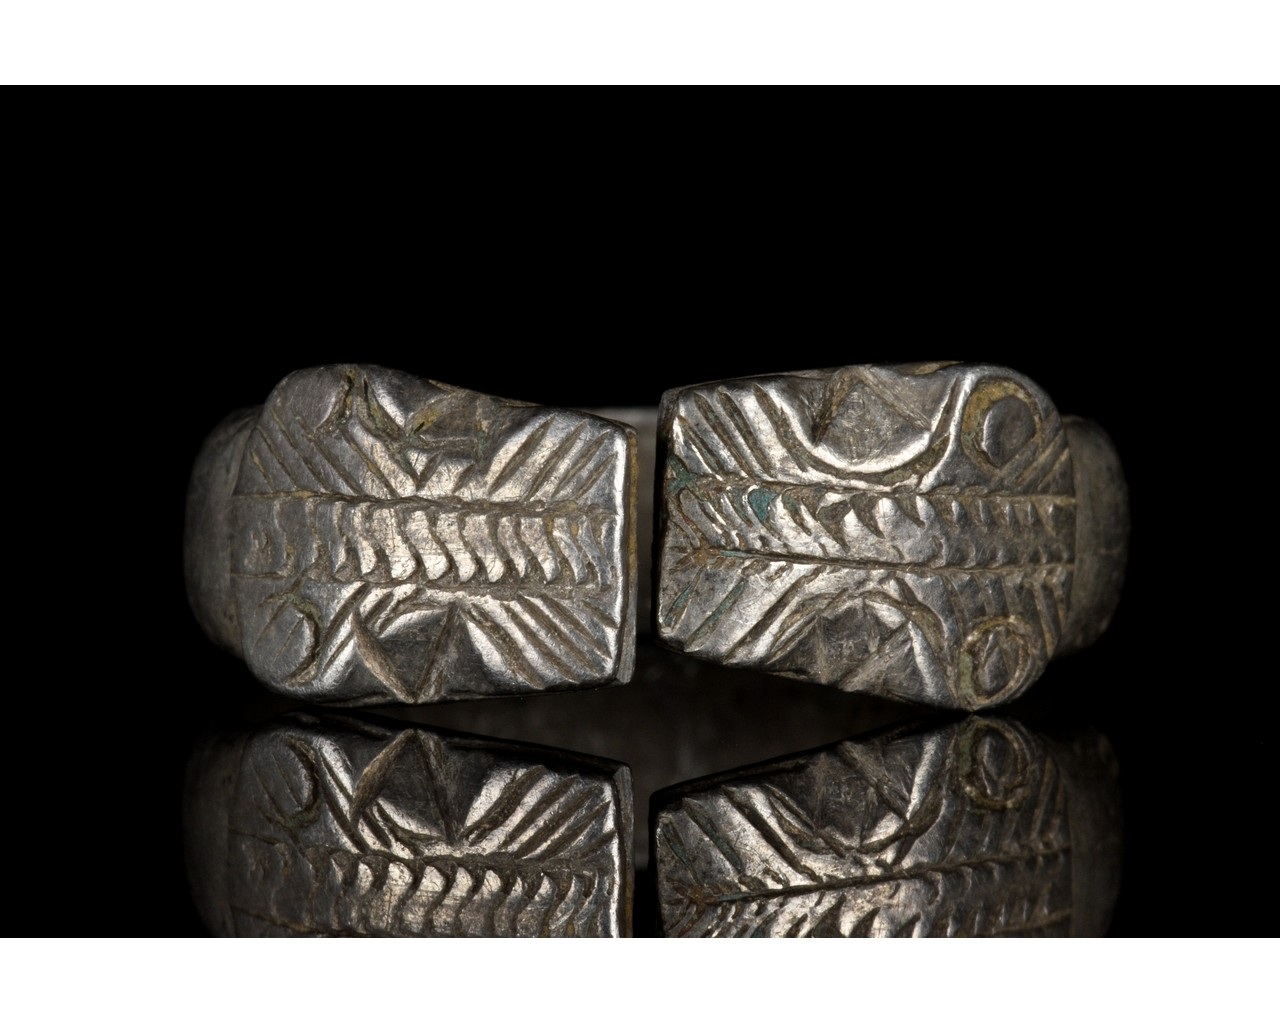 ROMAN SILVER RING WITH SNAKE HEADS - Image 2 of 5